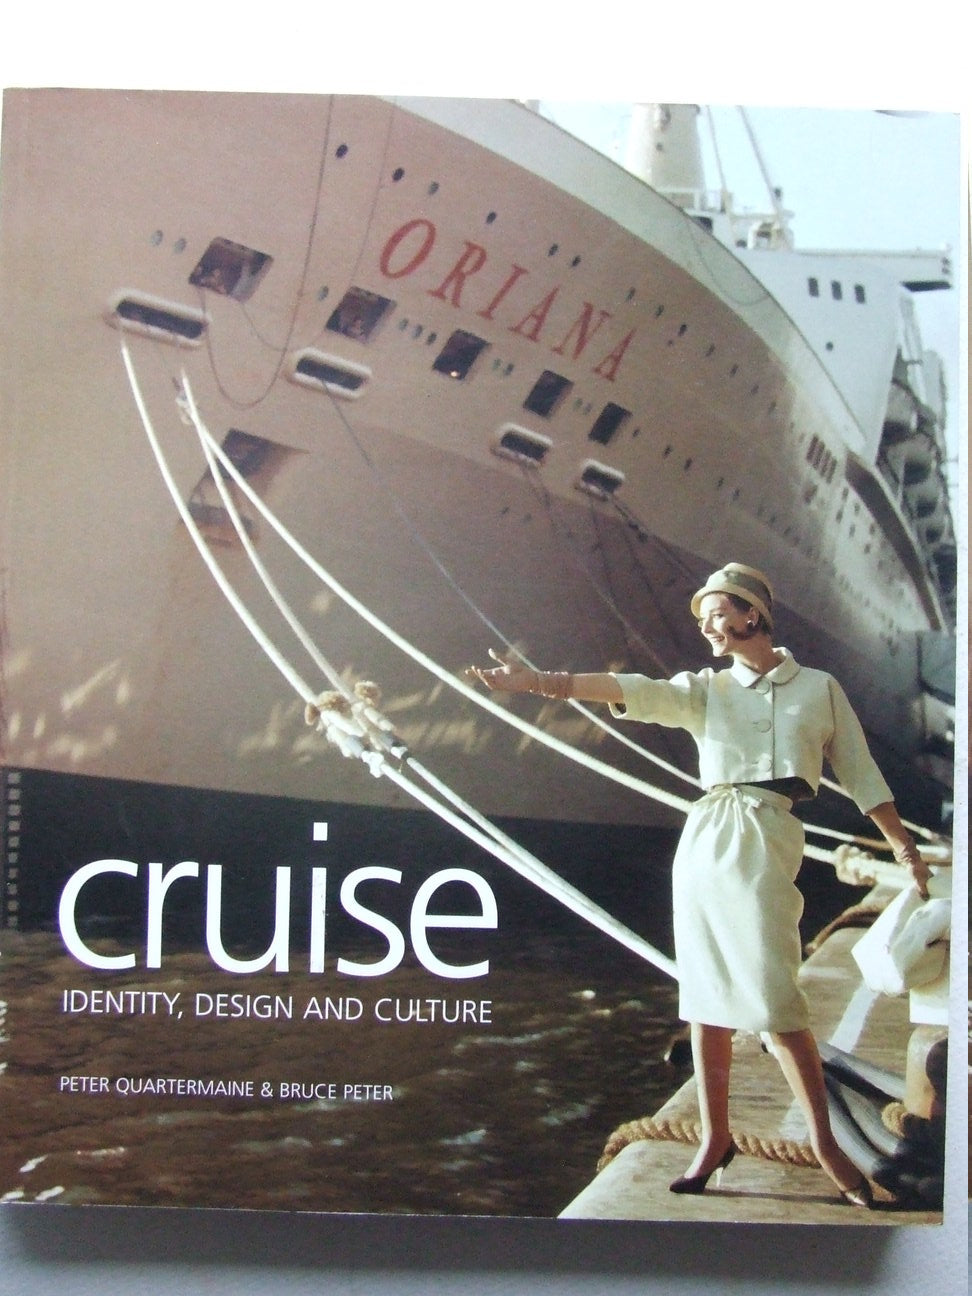 Cruise, identity, design and culture